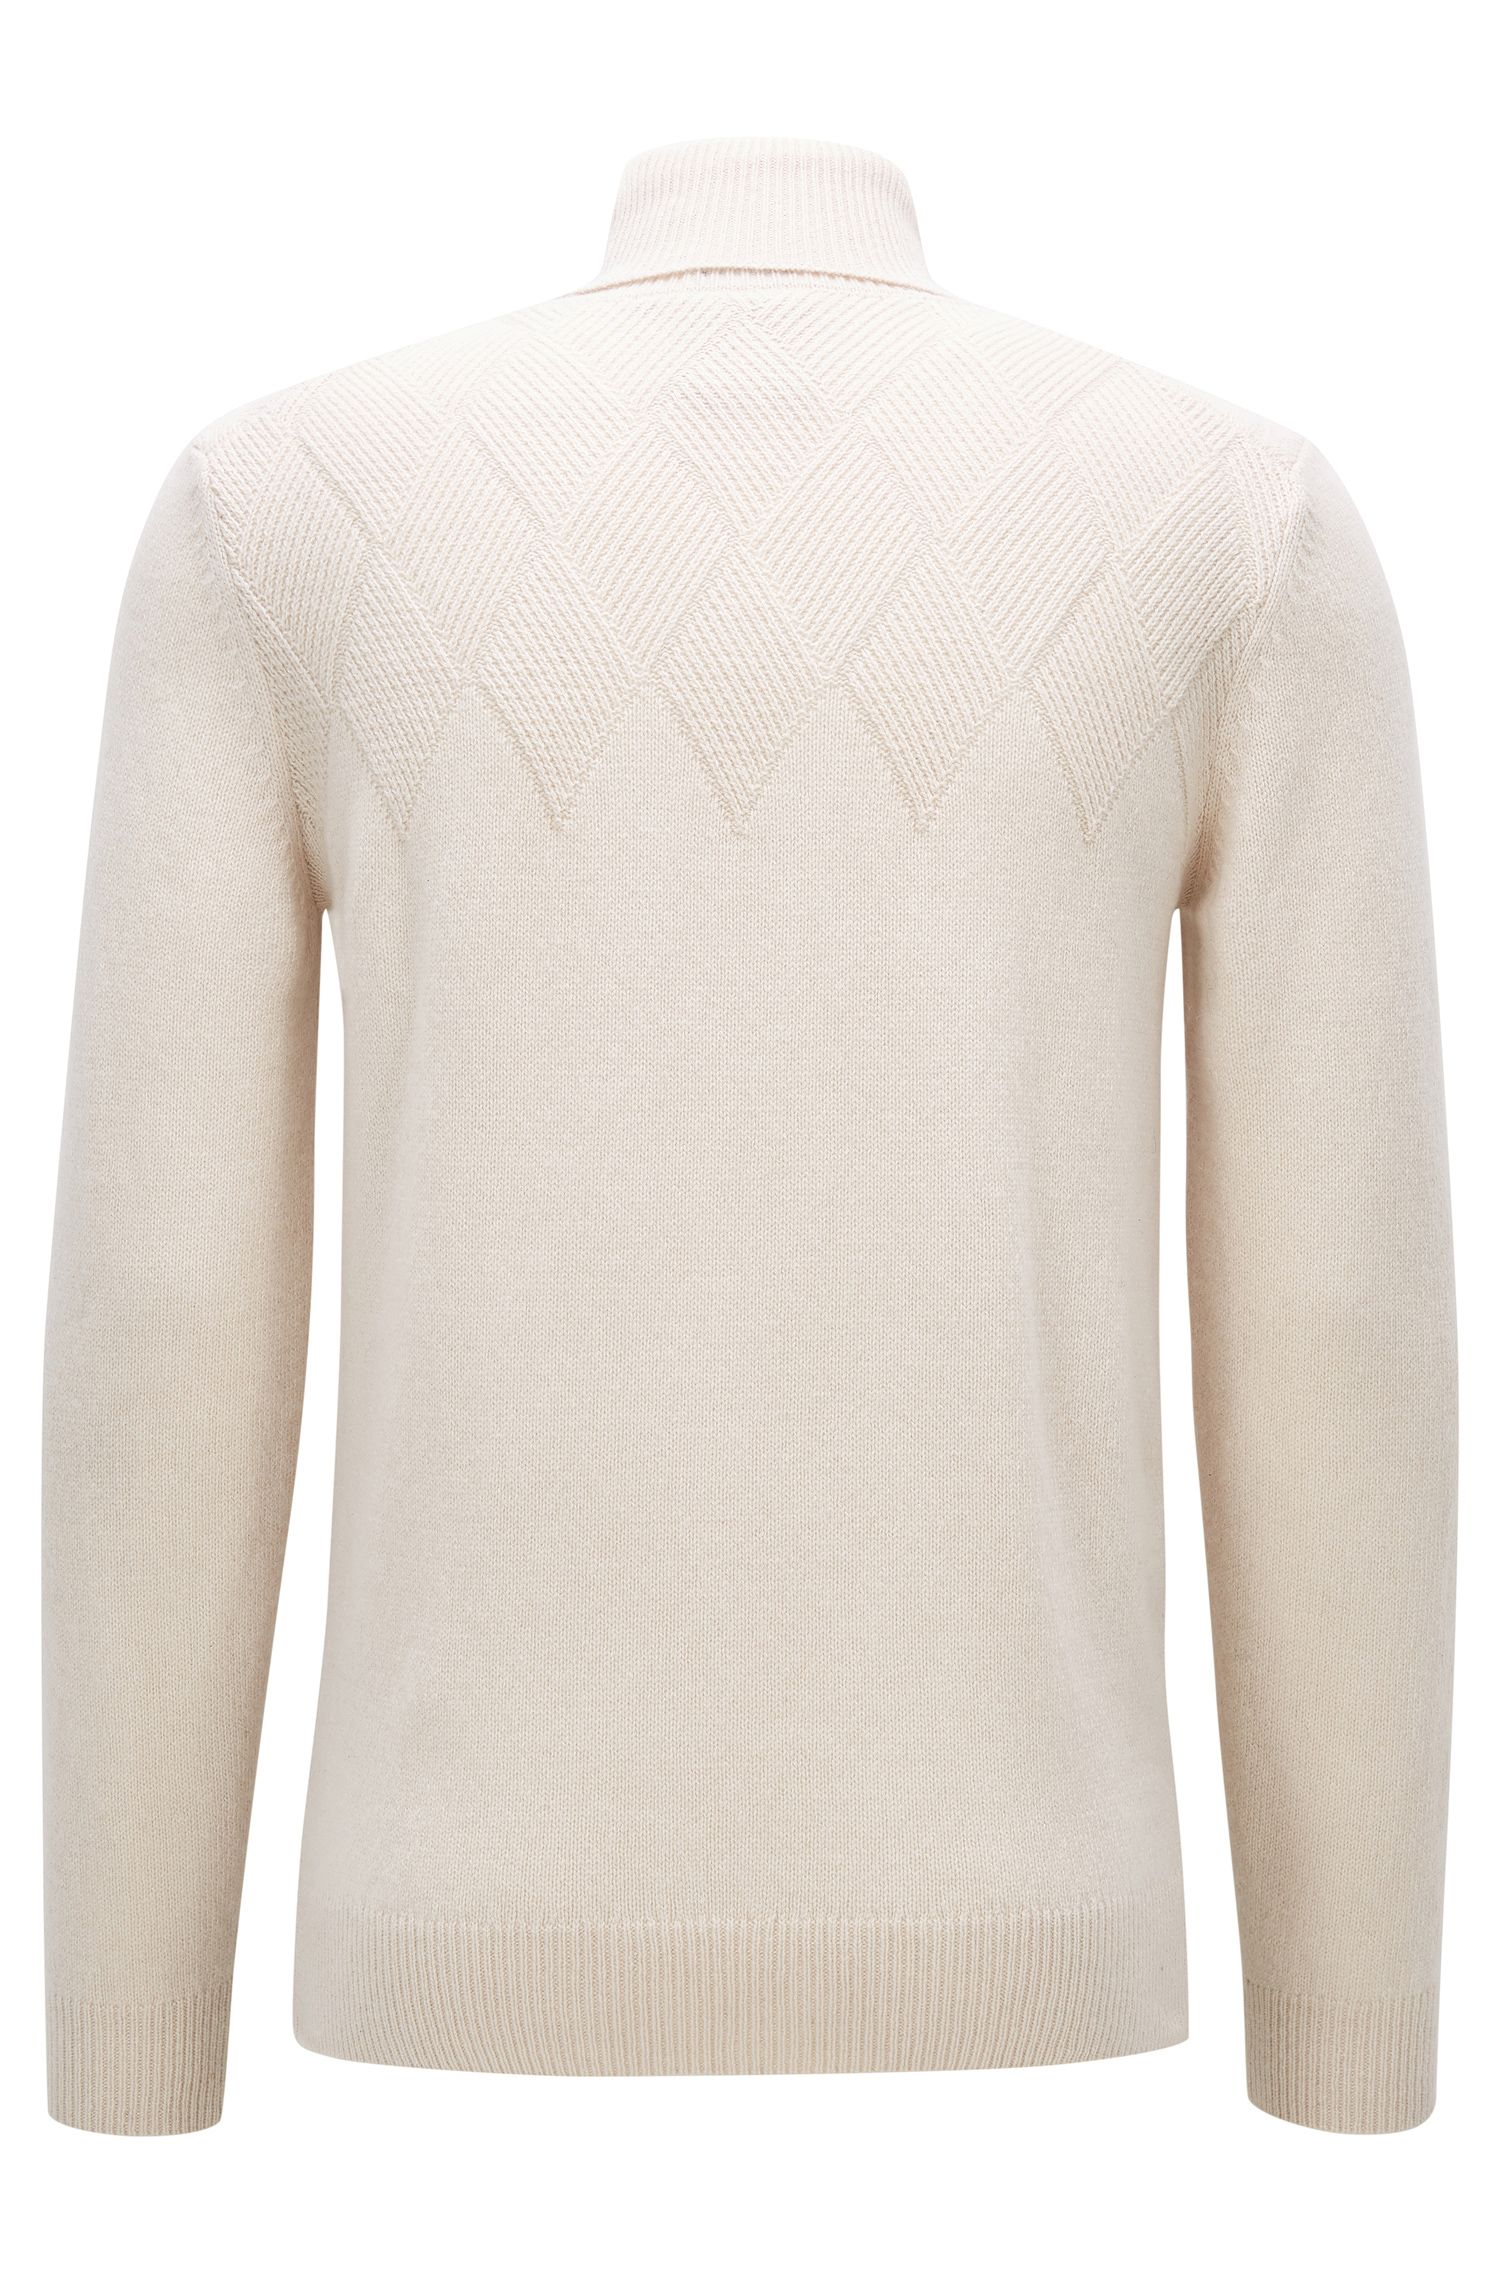 'T-Nuvolino' | Cashmere-Wool Turtleneck Sweater, Natural